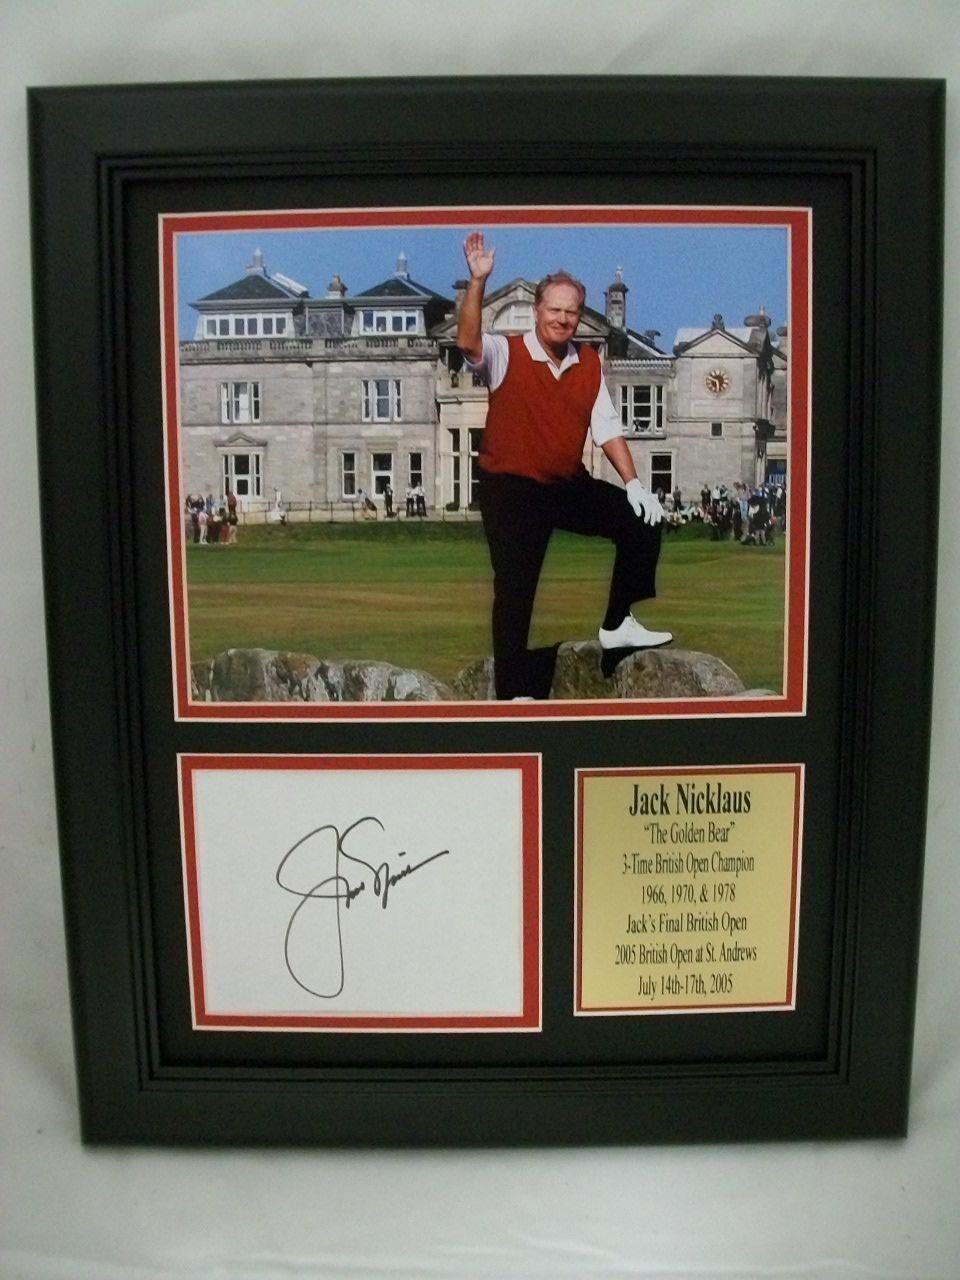 a1703c0d86af9 Jack Nicklaus Signed Photograph - 11x14 Framed Last British Open Reprint -  Golf Cut Signatures at Amazon s Sports Collectibles Store